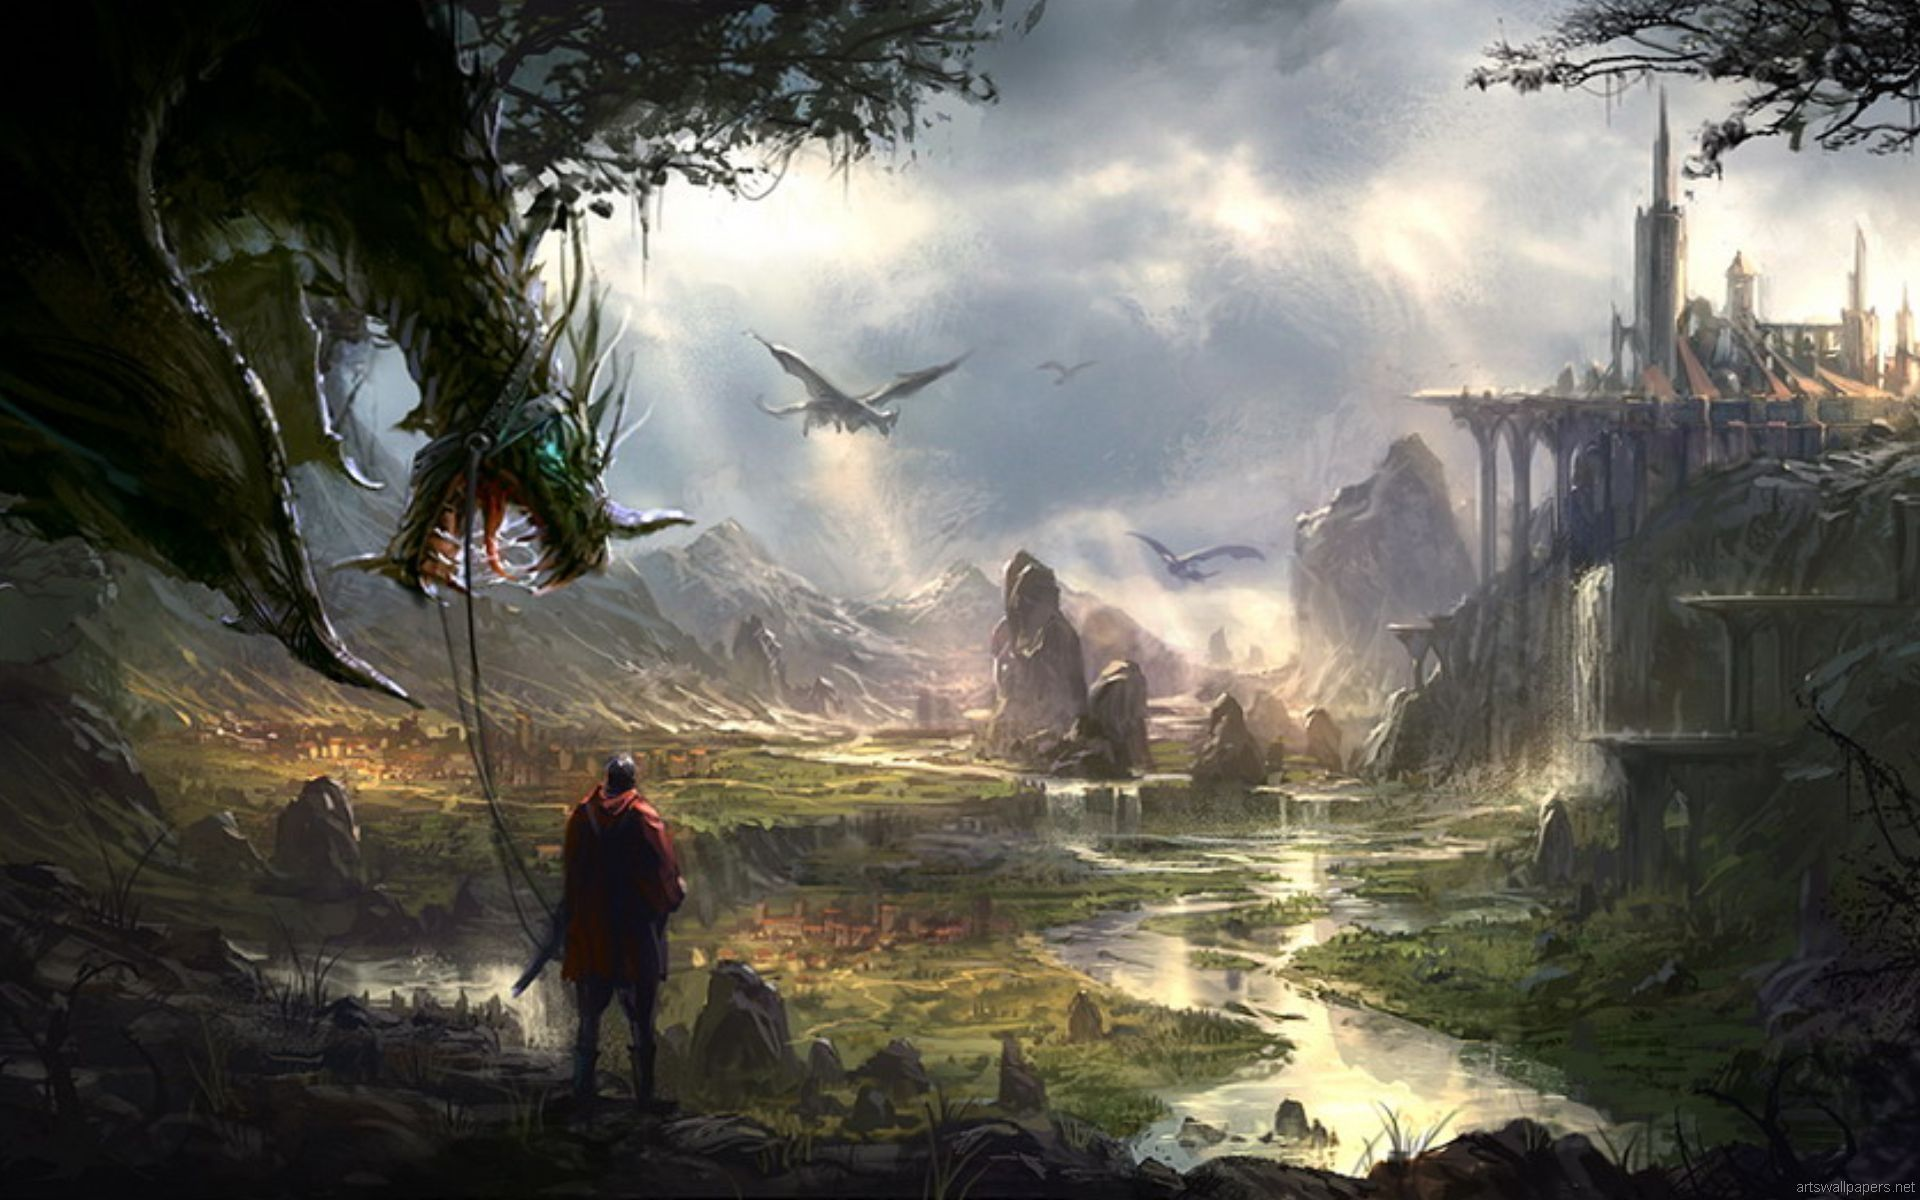 Wallpaper Collection 37 Best Free Hd Fantasy Wallpaper Background To Download Pc Mobile In 2020 Fantasy Pictures Fantasy Landscape Wallpaper Images Hd